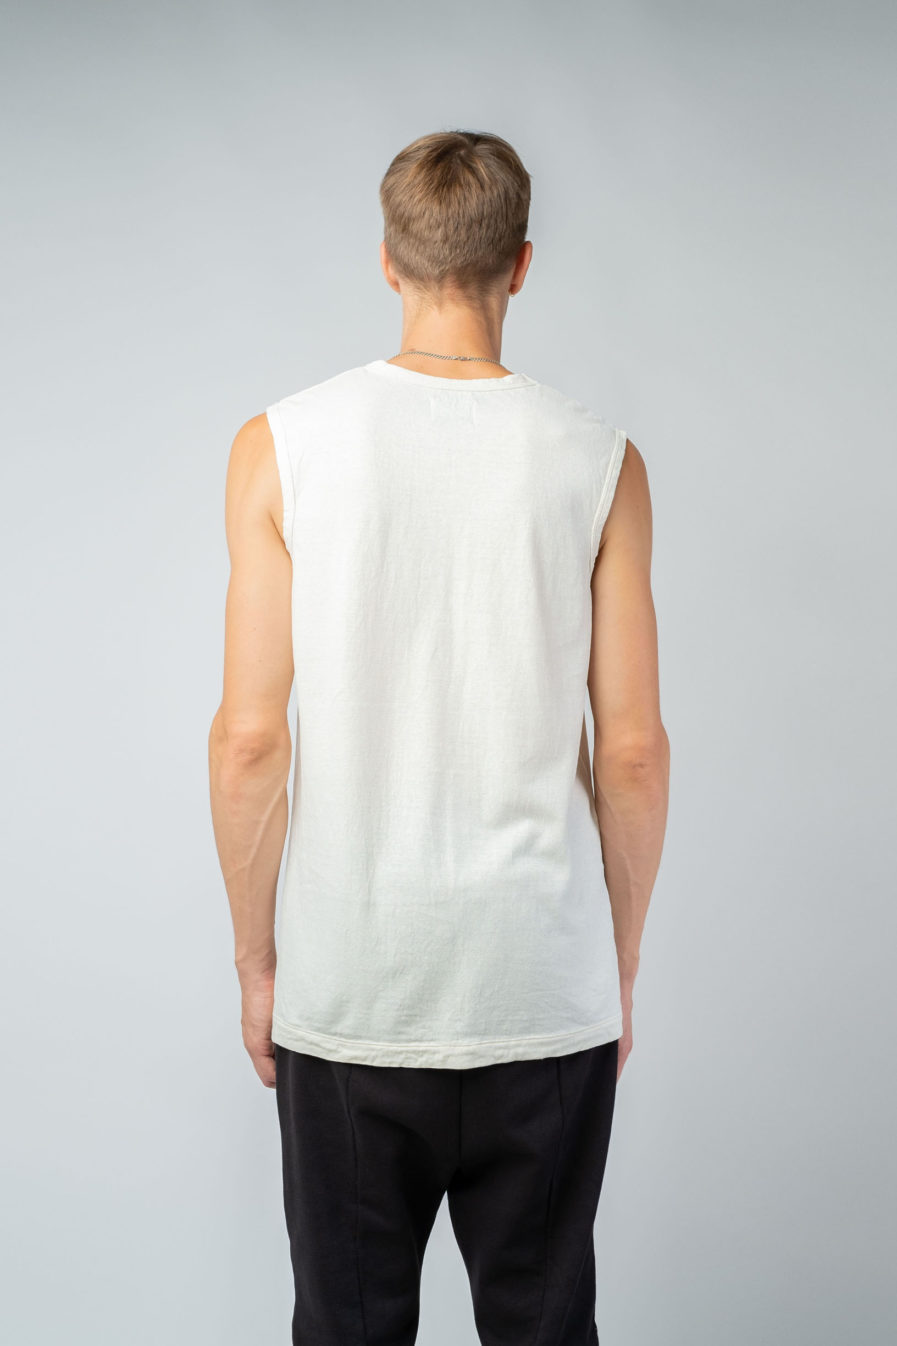 MAN unisex singlet tanktop hemp organic cotton VALENTIJN Blank canvas back